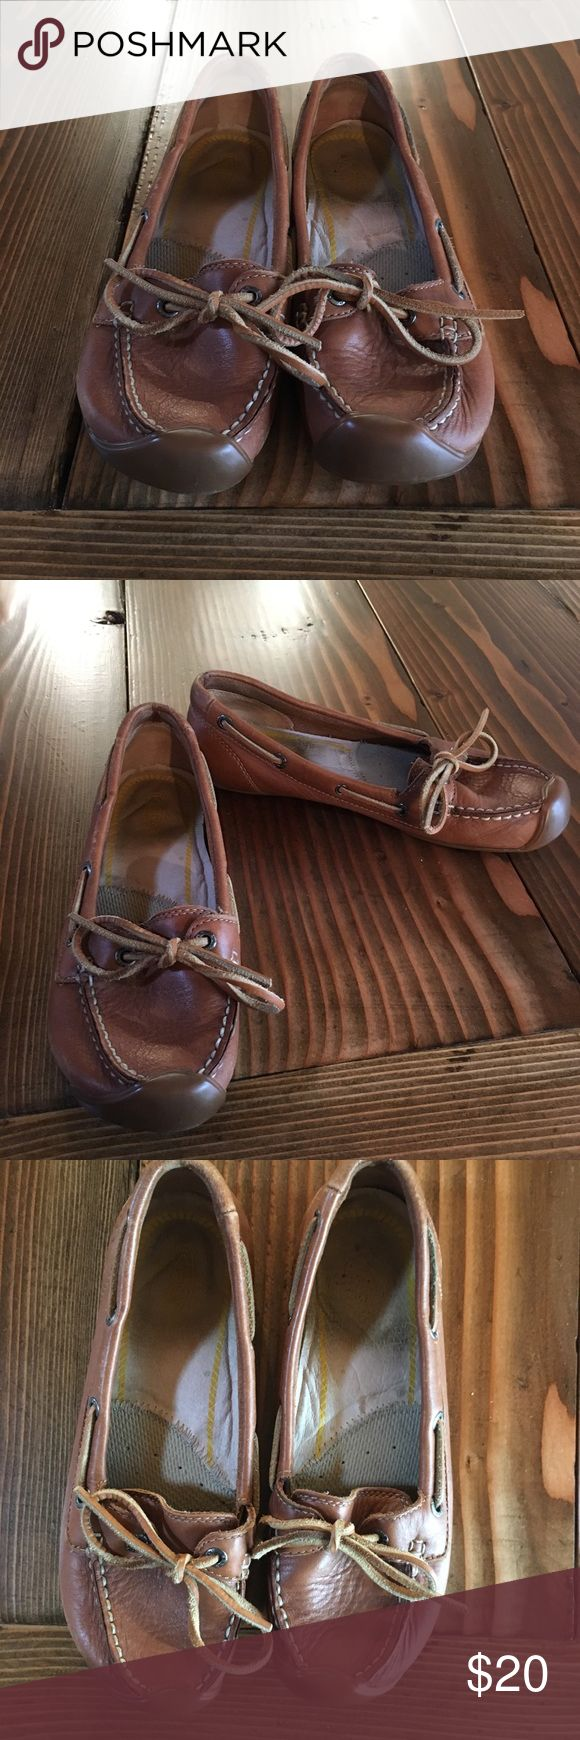 Keen Catalina Tan Leather Boat Shoe Good used condition Keen Catalina Boat Shoe. Keen makes great quality shoes so these still have a lot of life left in them. Super comfortable! Keen Shoes Flats & Loafers